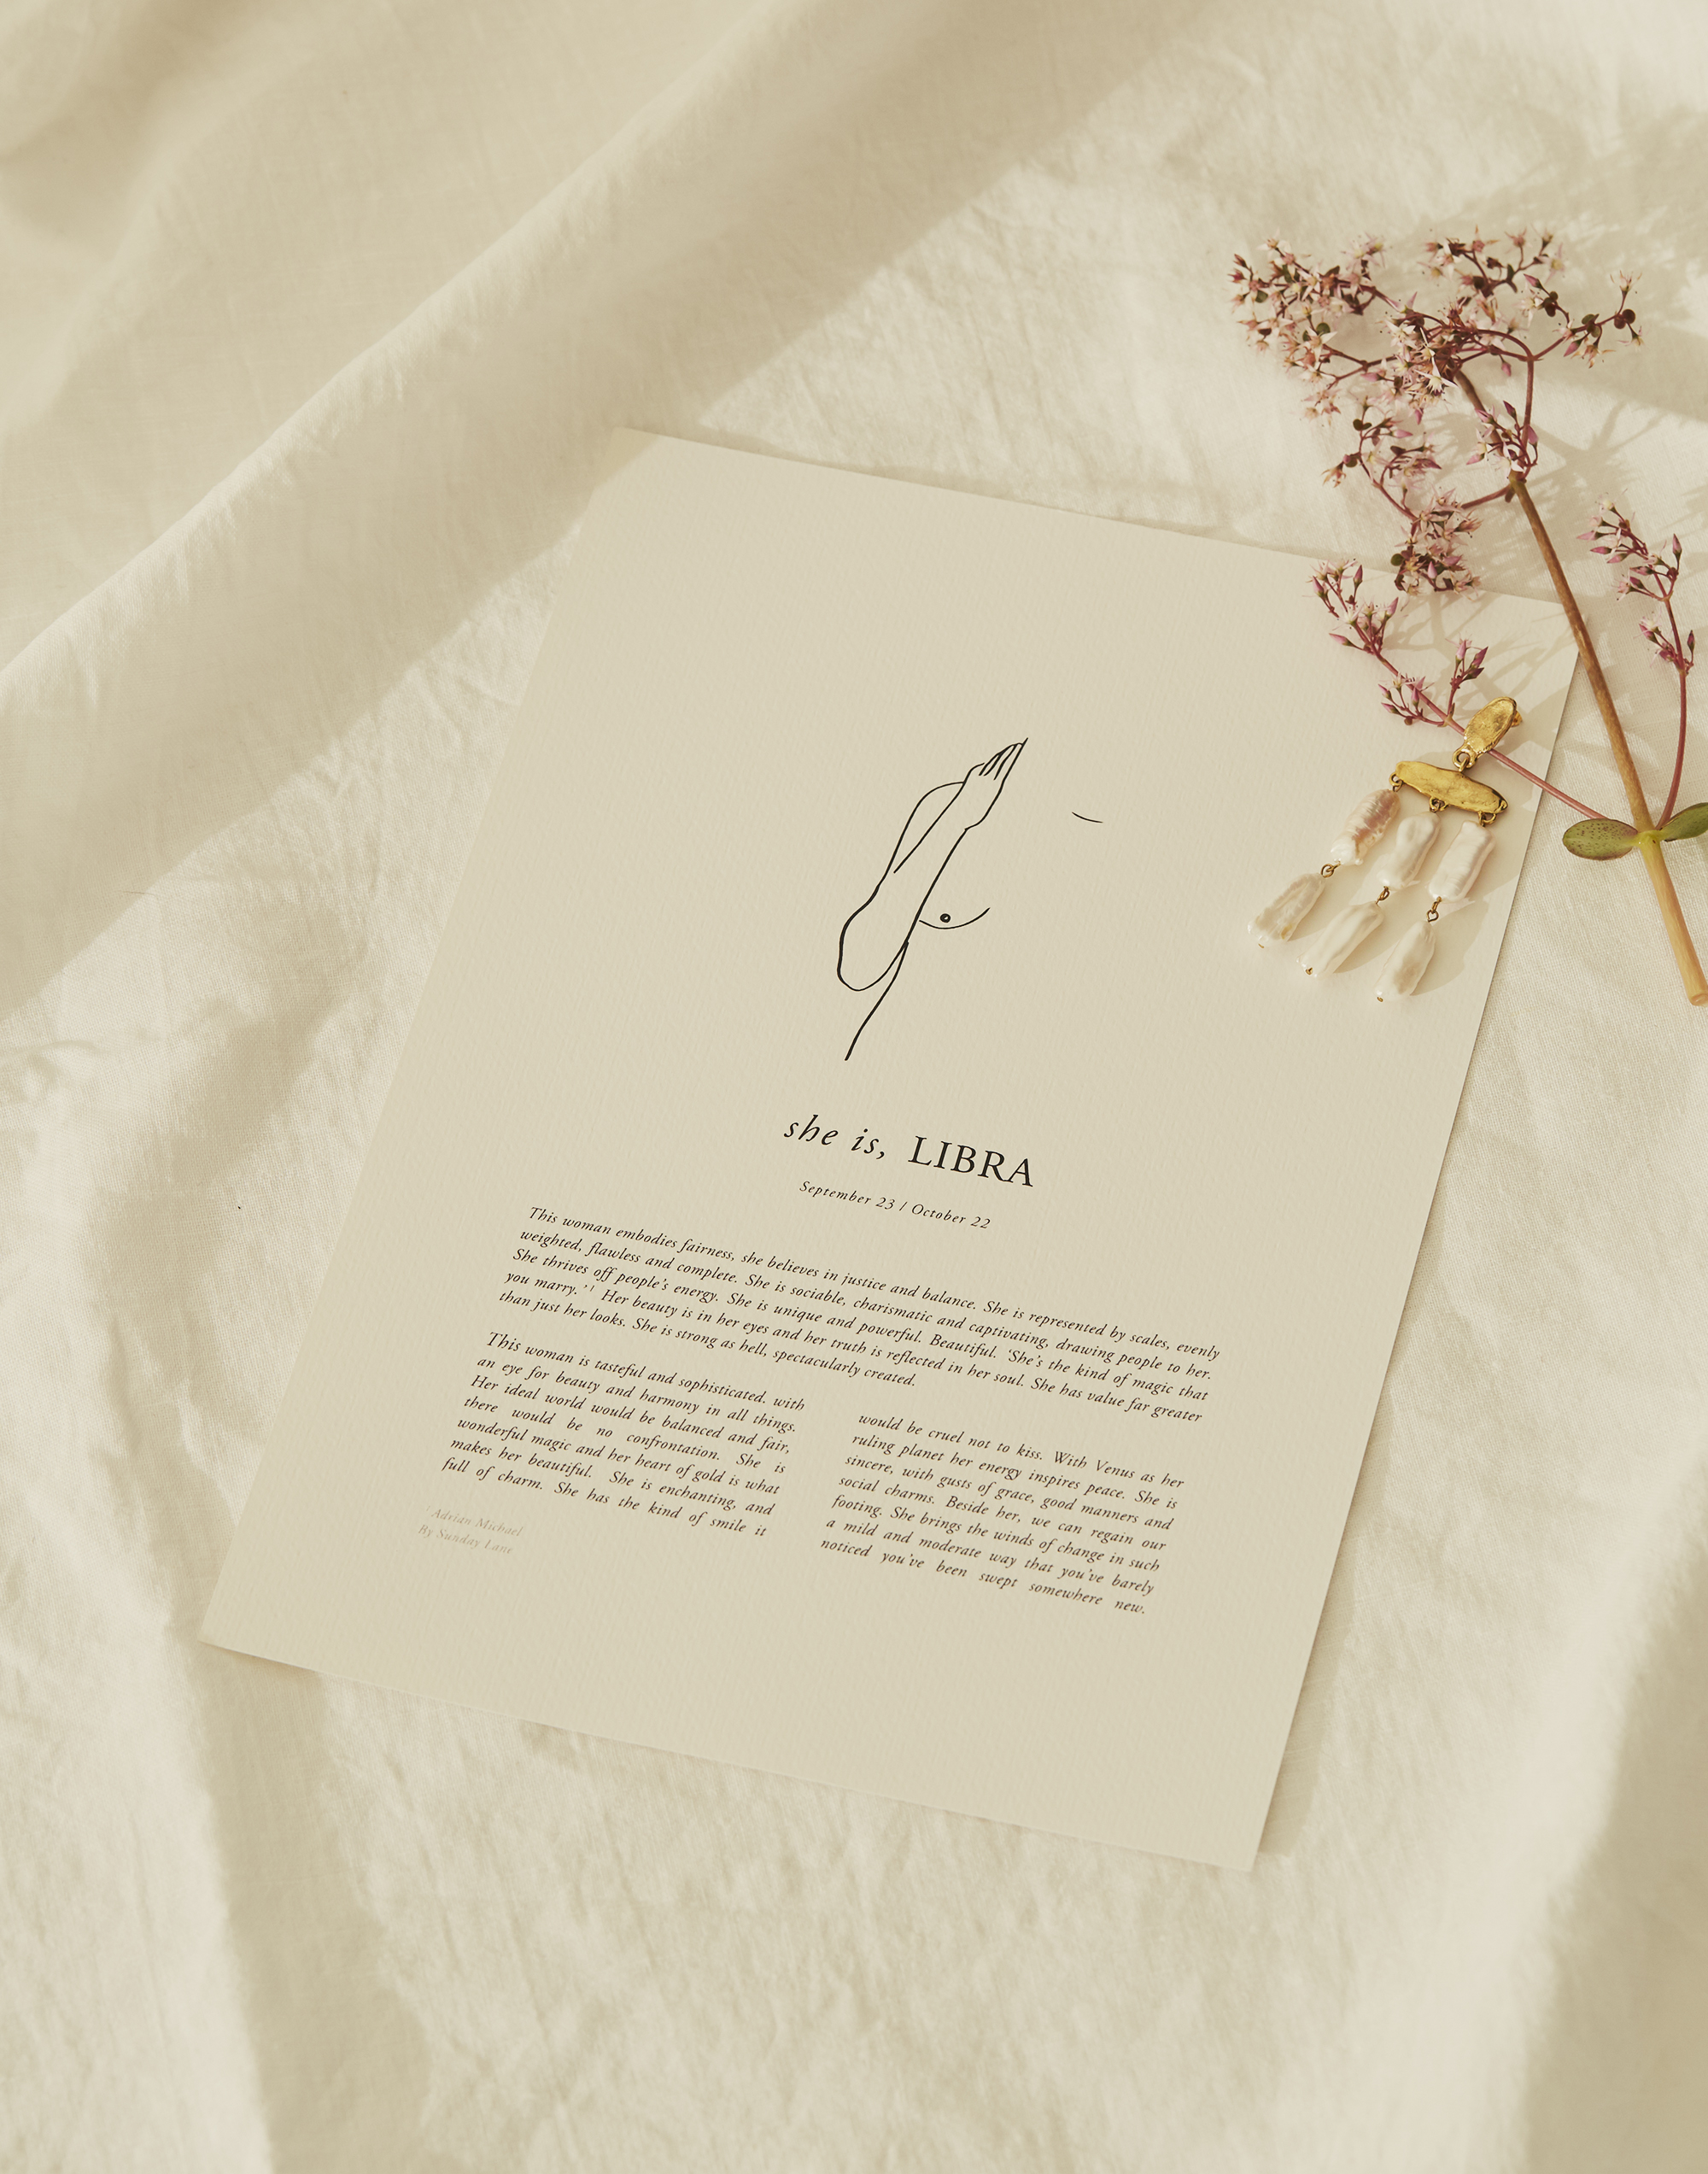 'The Zodiacs' prints from Sunday Lane Studio, a simple and poetic celebration of self.